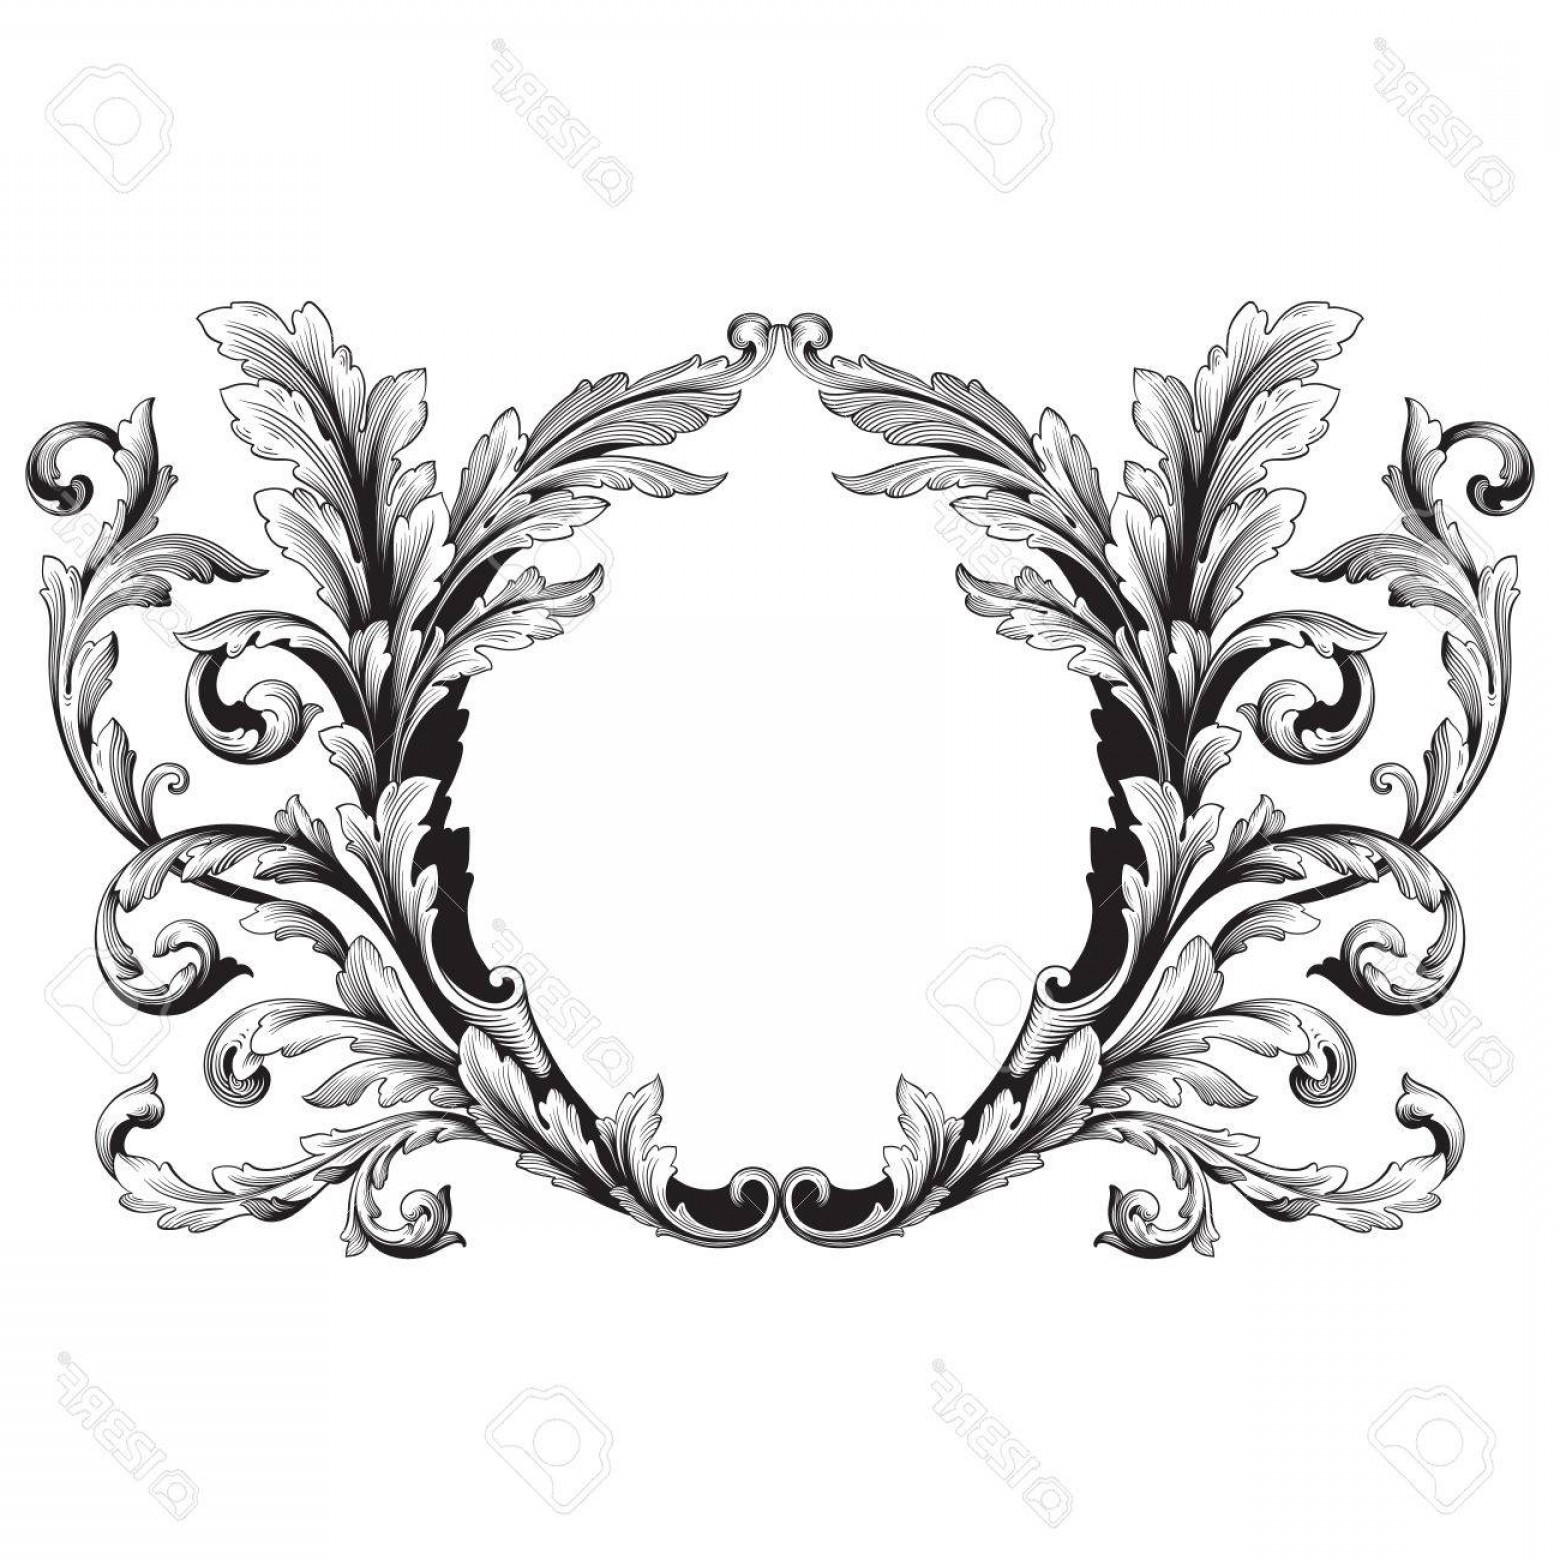 Vintage baroque clipart picture black and white Photostock Vector Vintage Baroque Frame Scroll Ornament ... picture black and white